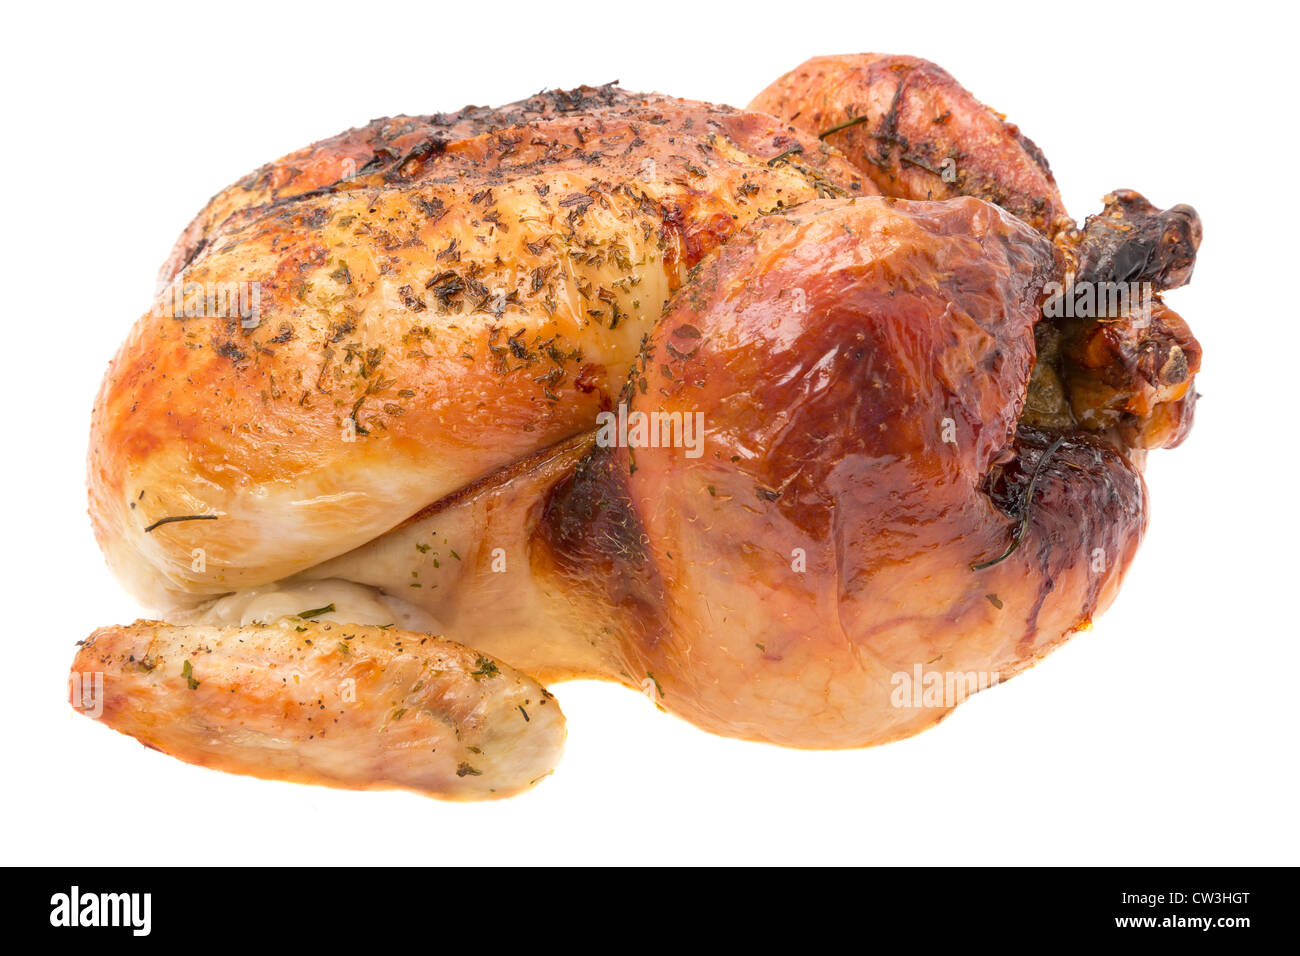 A ready to eat freshly roasted chicken - studio shot with a white background - Stock Image